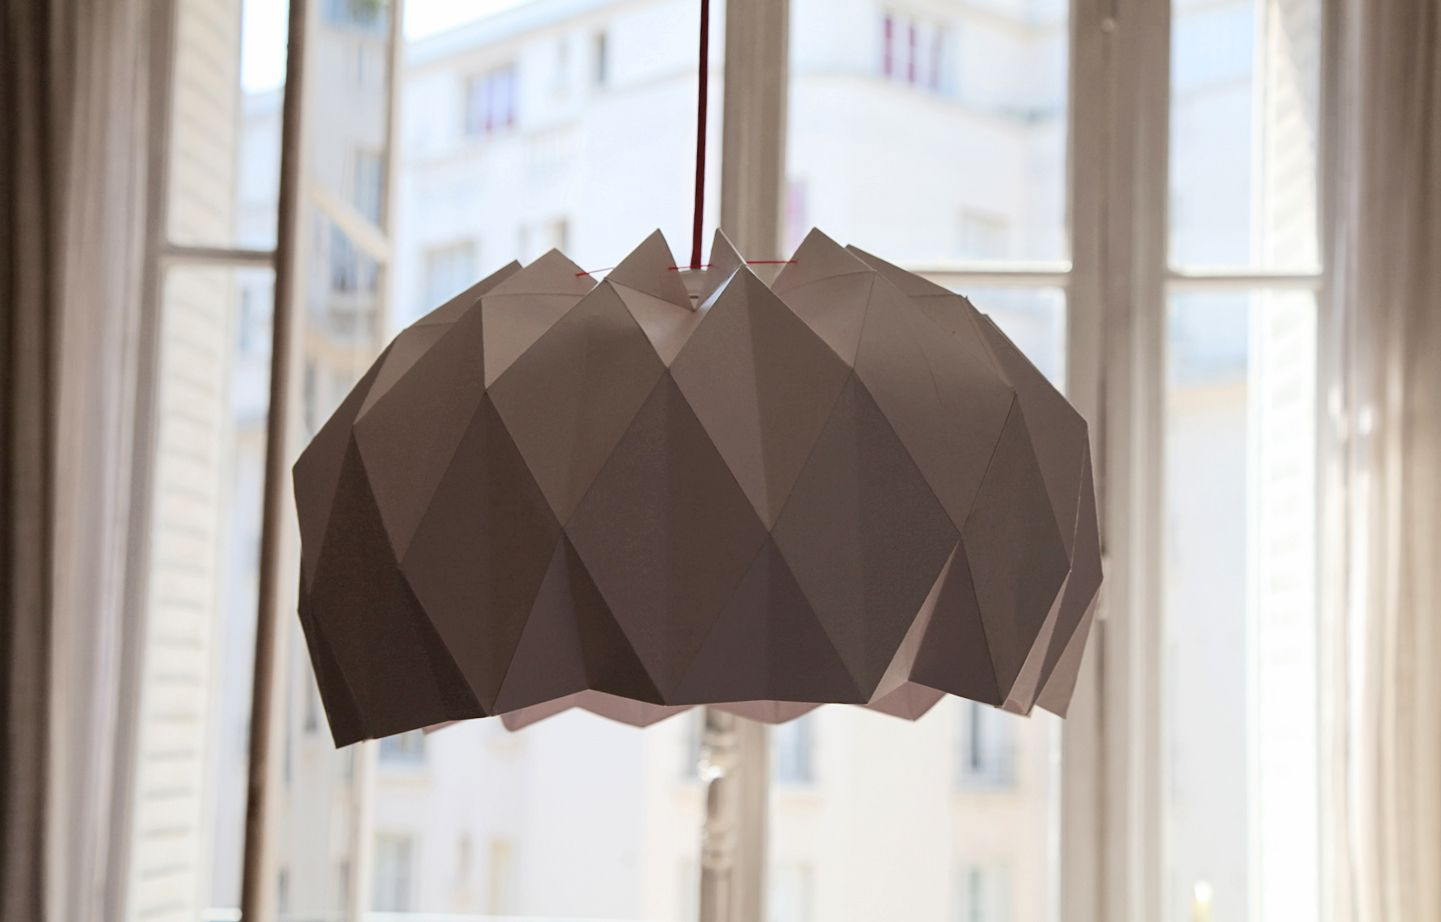 suspension origami diy salon sejour d co pinterest luminaires lampes et chambres b b. Black Bedroom Furniture Sets. Home Design Ideas